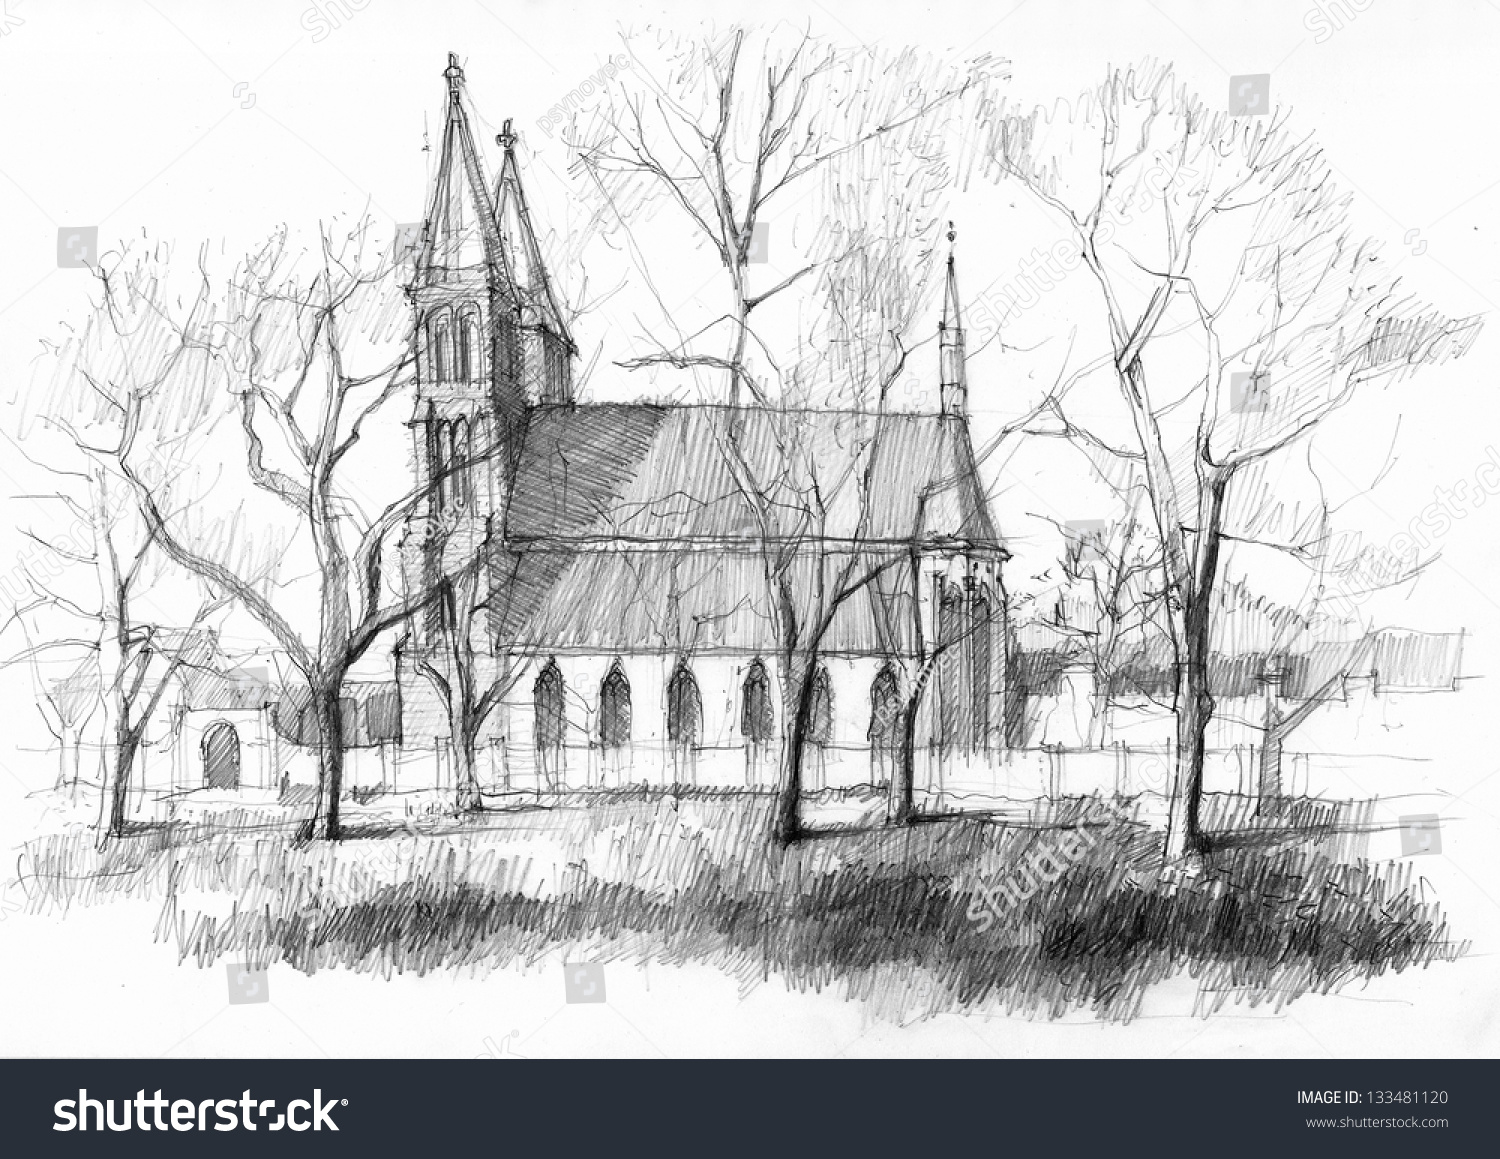 Vysehrad medieval castle in prague pencil drawing from the park